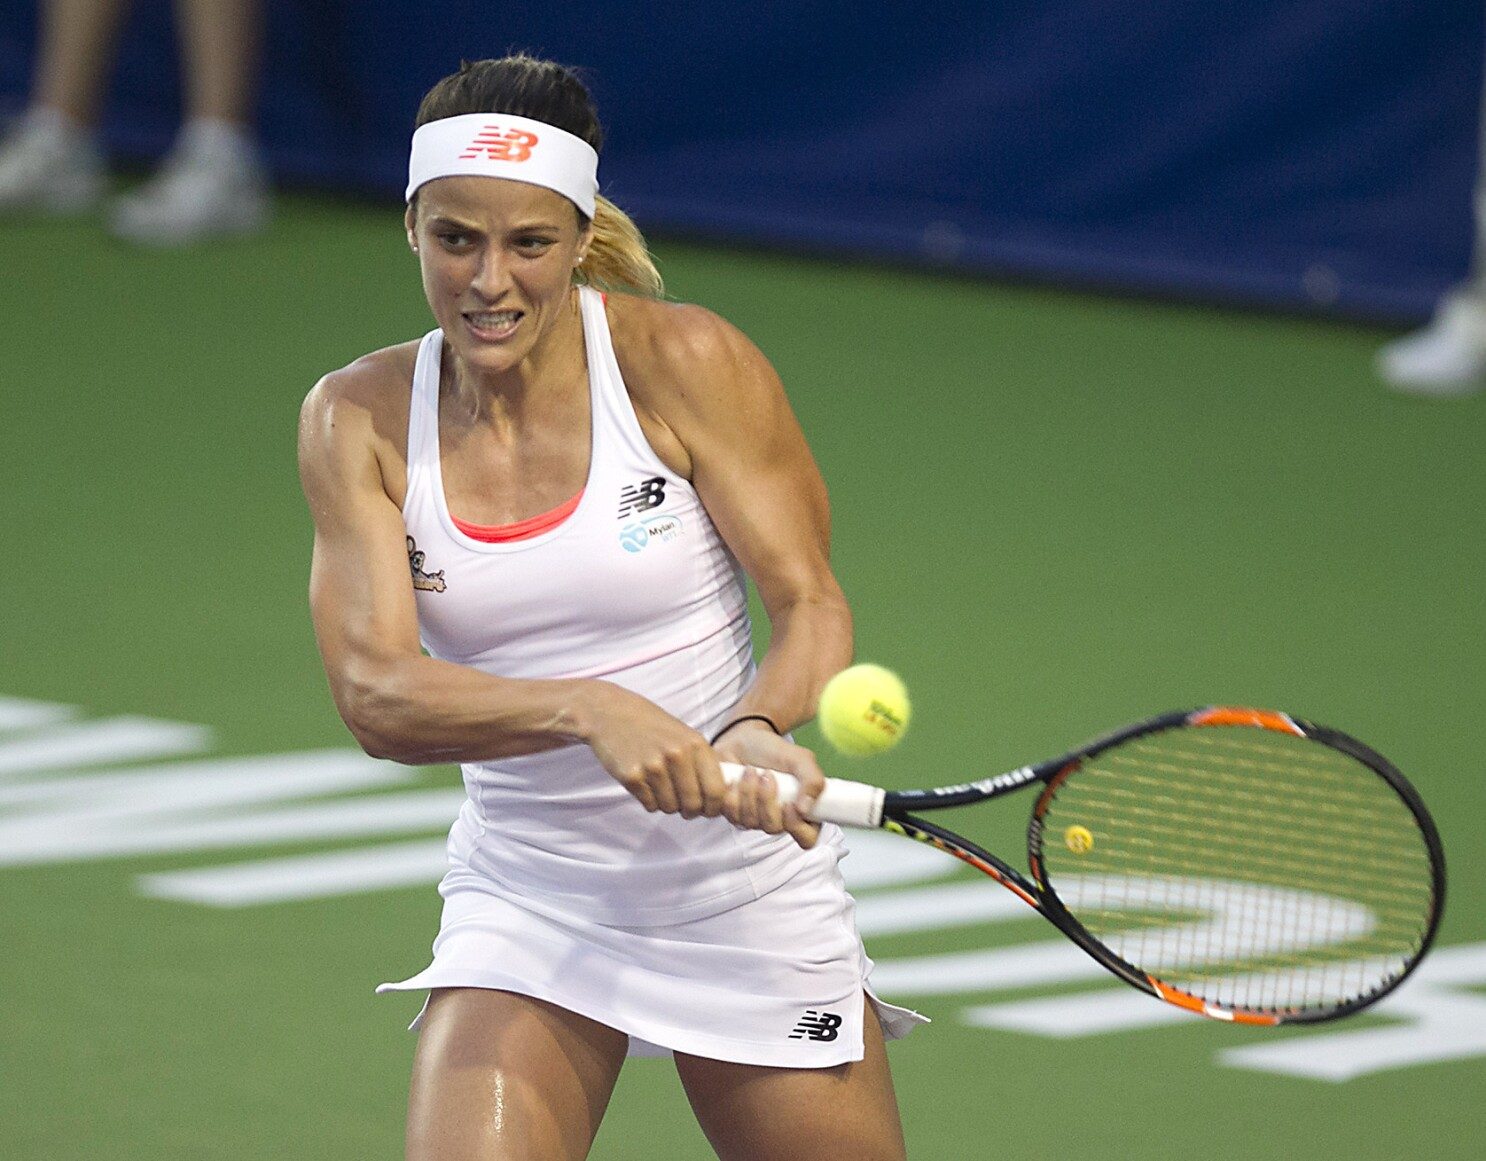 Column: Nicole Gibbs' cancer battle has bolstered her commitment to tennis